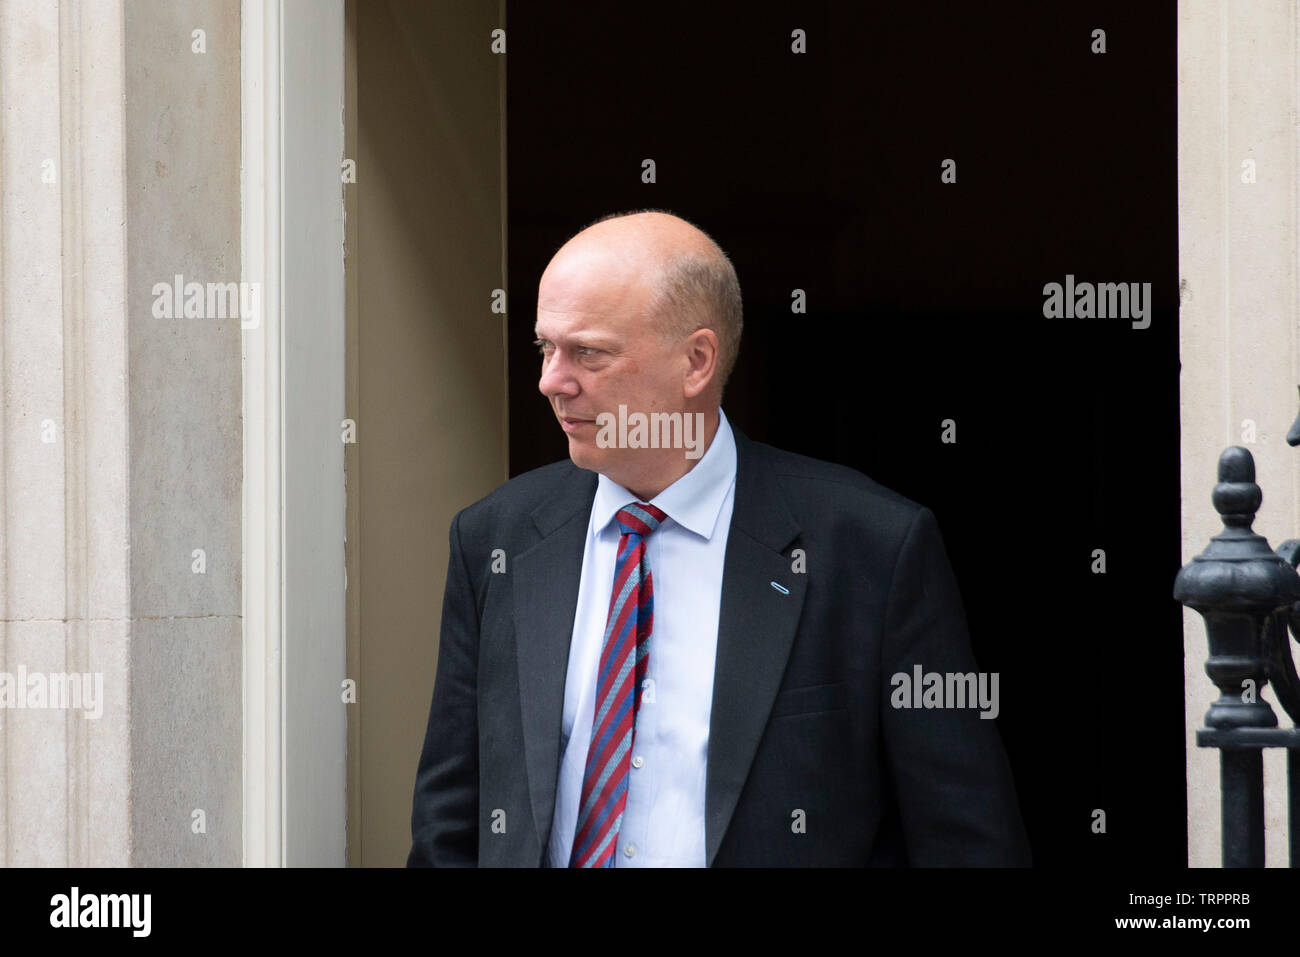 London, UK. 11th June, 2019. Transport Secretary Chris Grayling leaves Downing Street following a cabinet meeting. Credit: Claire Doherty/Alamy Live News Stock Photo